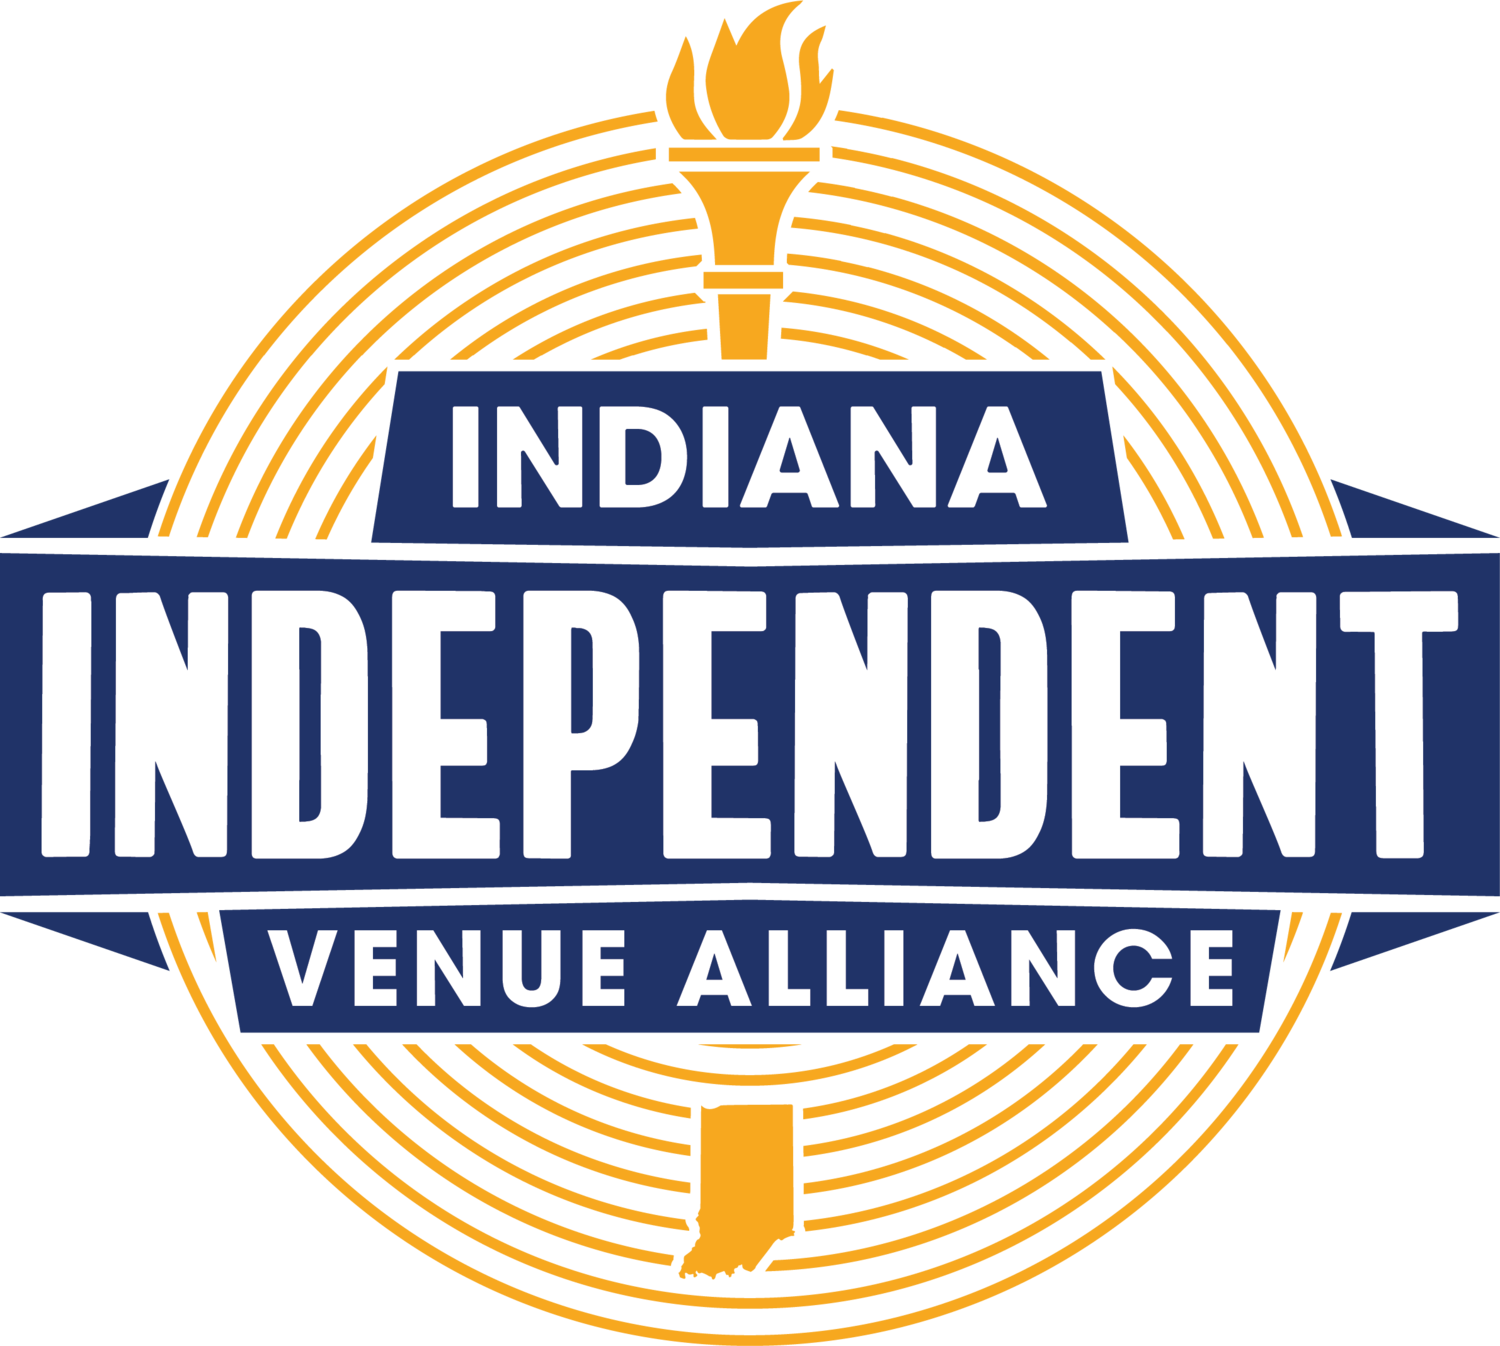 Indiana Independent Venue Alliance